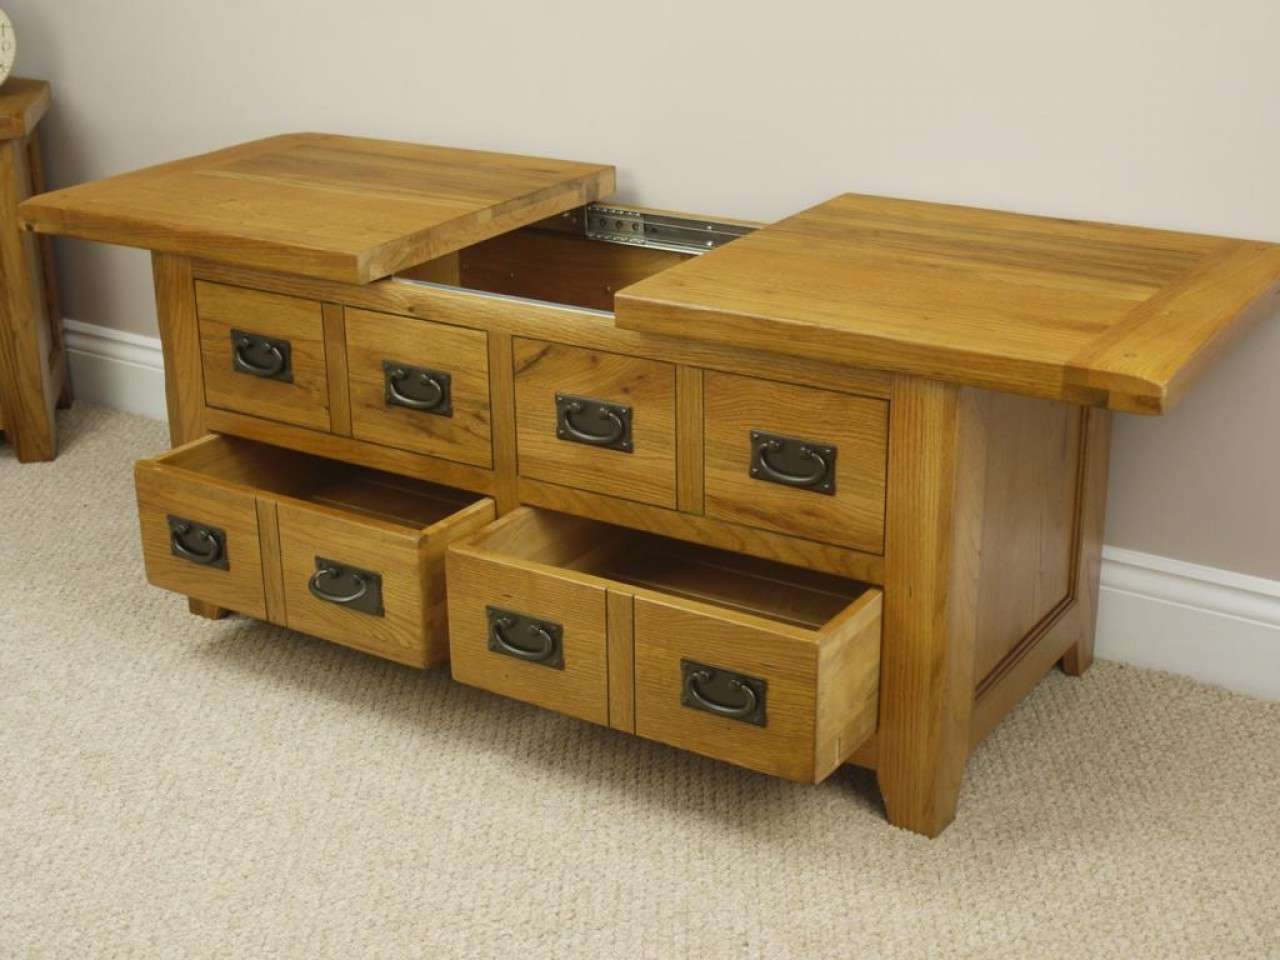 Most Popular Coffee Tables With Box Storage With Coffee Tables : Simple Square Ottoman Coffee Table With Storage (View 10 of 20)